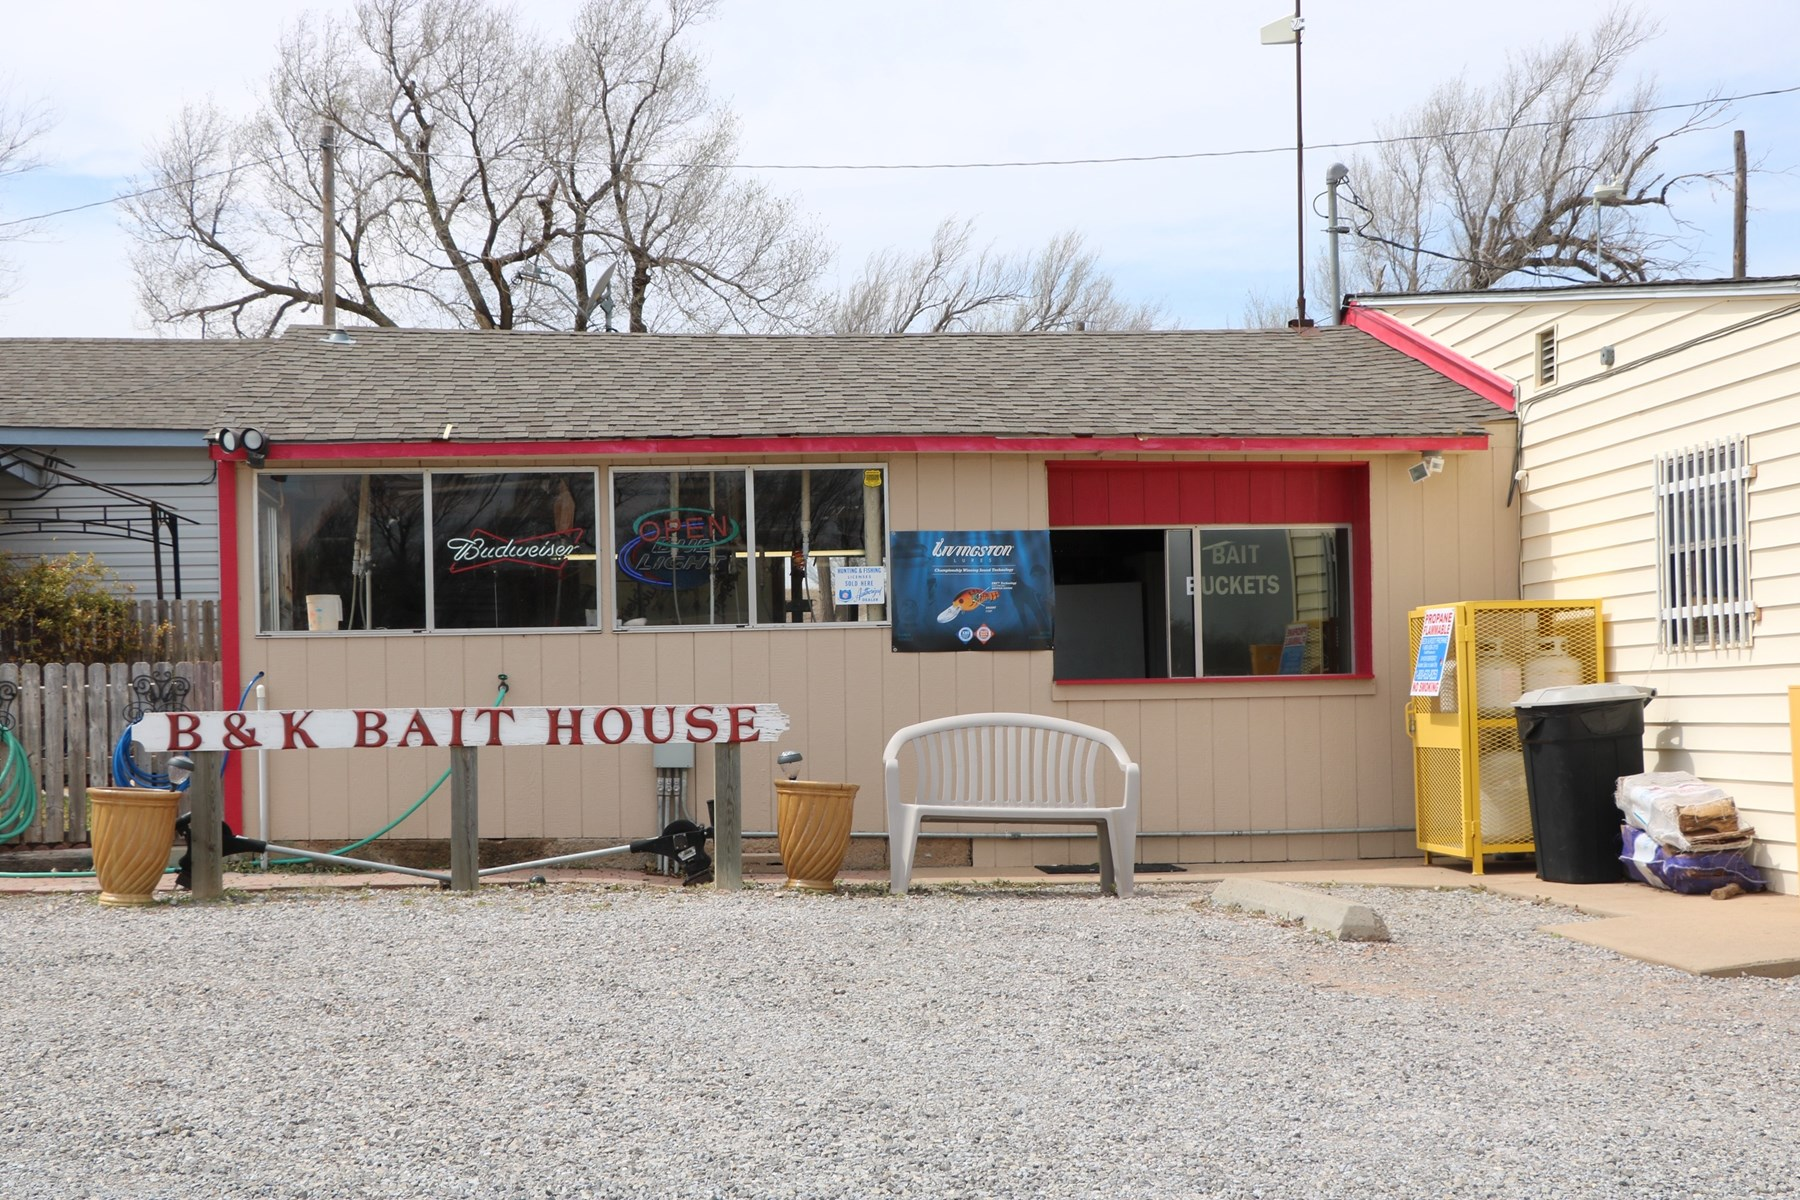 Lake Businesses and home for sale